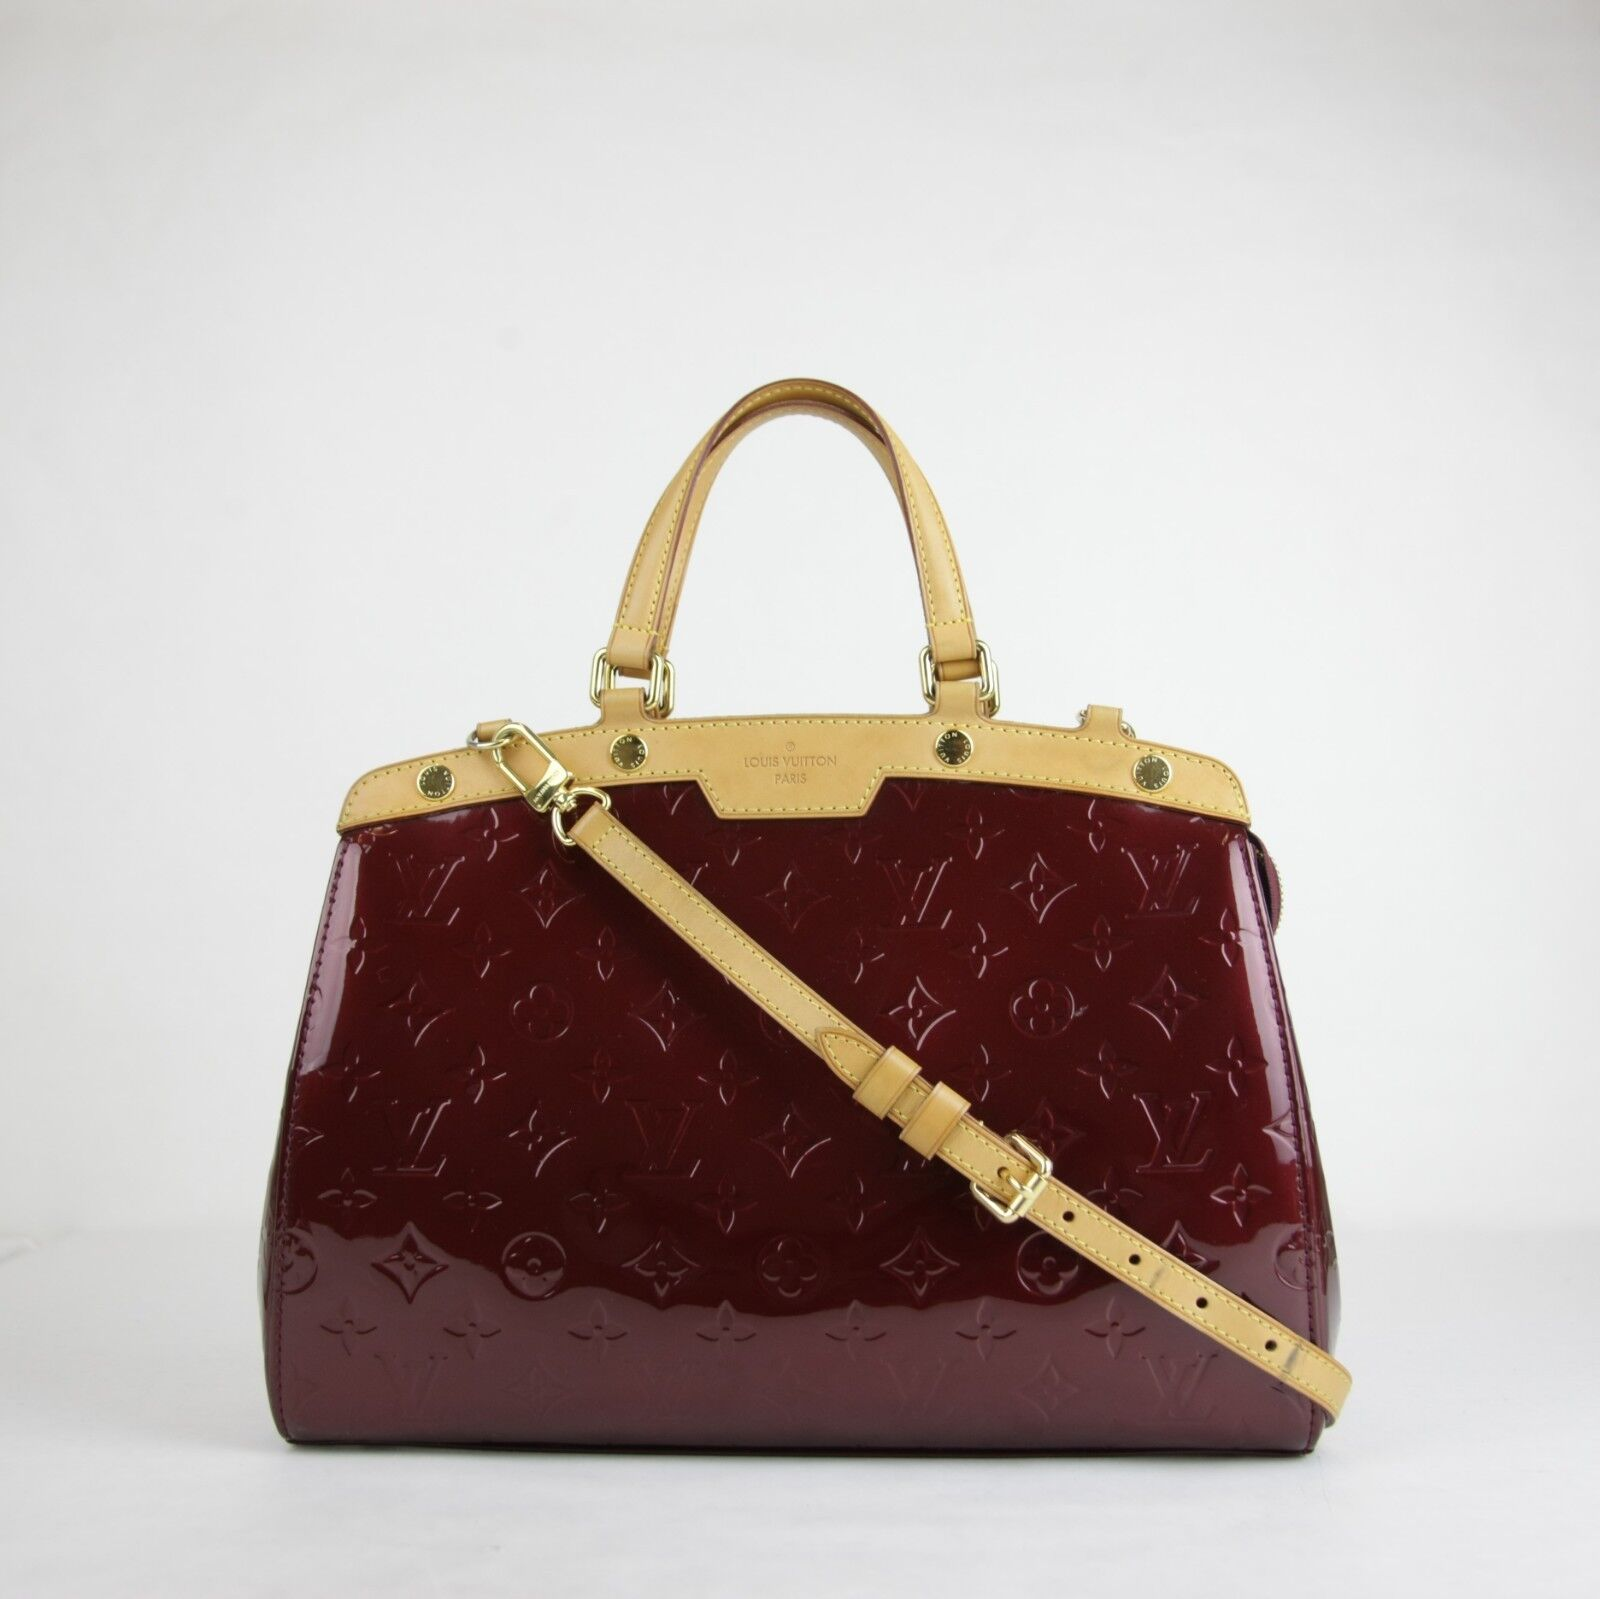 Louis Vuitton Rot Shimery Rouge Lackleder Brea mm Umhängetasche Aa4162 - 1.119.75,Kaufpreis 1,12,datum 01.07.2020 22:12:38,Website